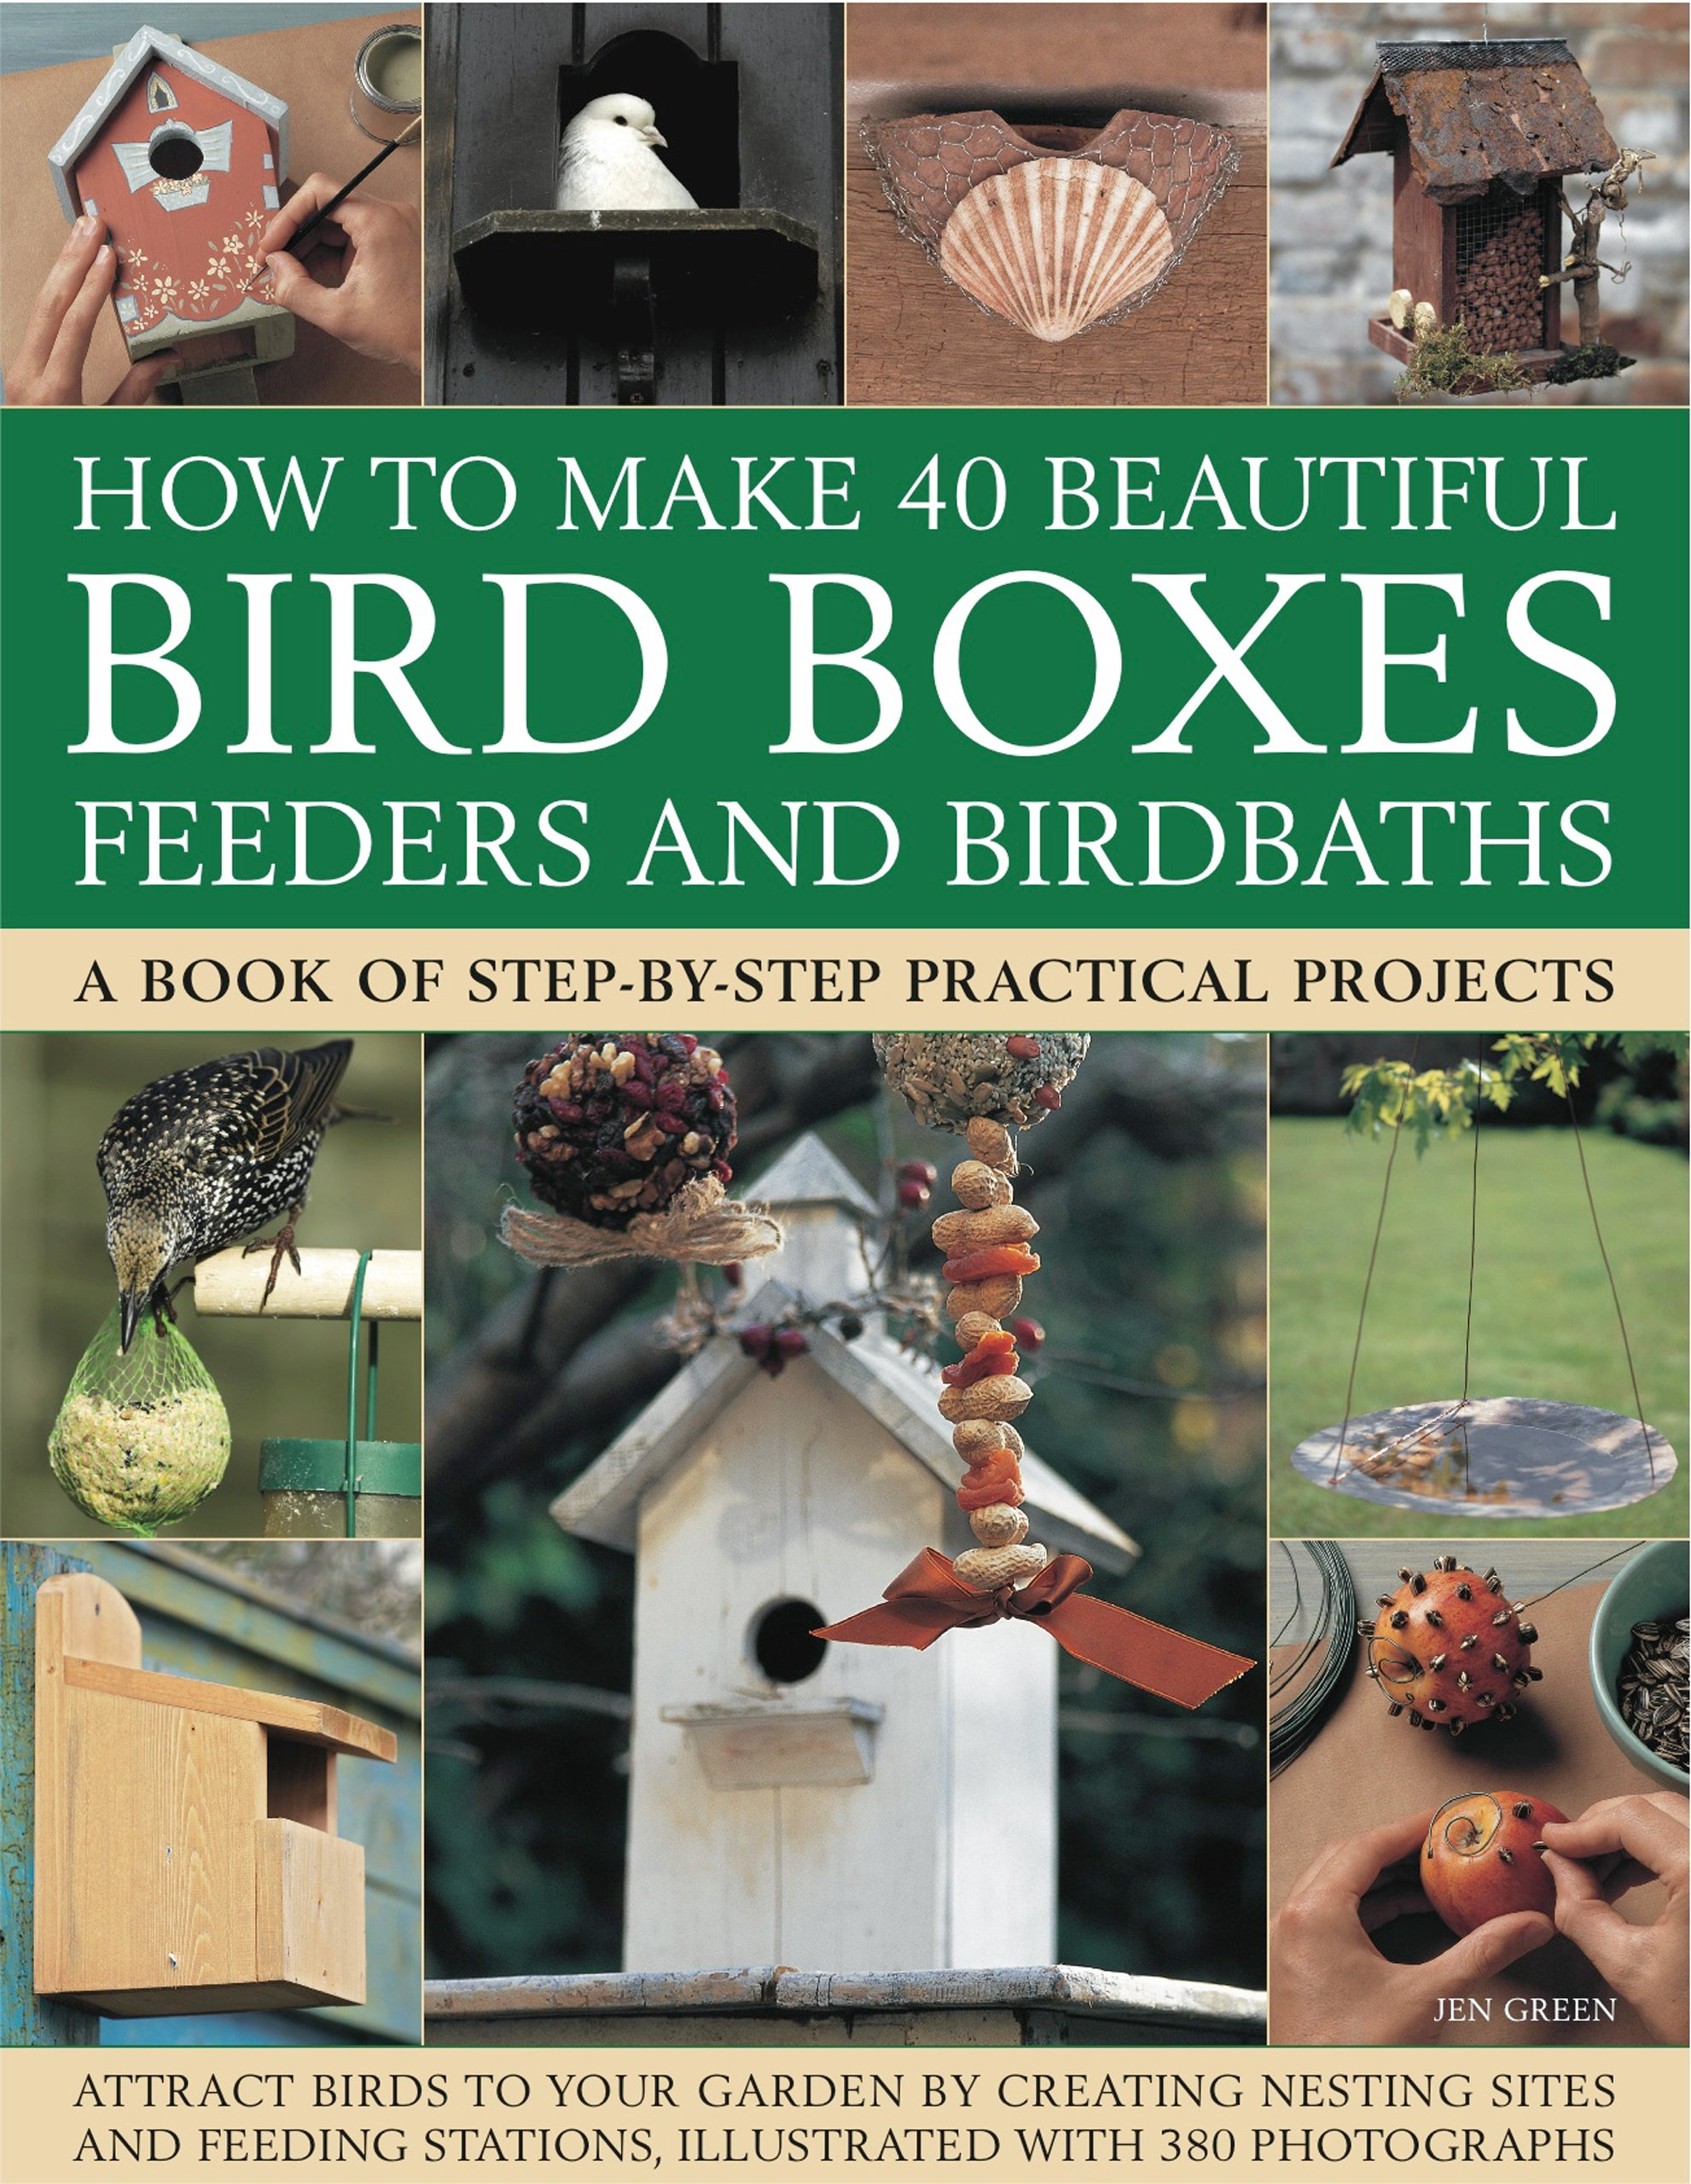 Download How to Make 40 Beautiful Bird Boxes, Feeders and Birdbaths: Attract Birds to Your Garden by Creating Nesting Sites and Feeding Stations ebook